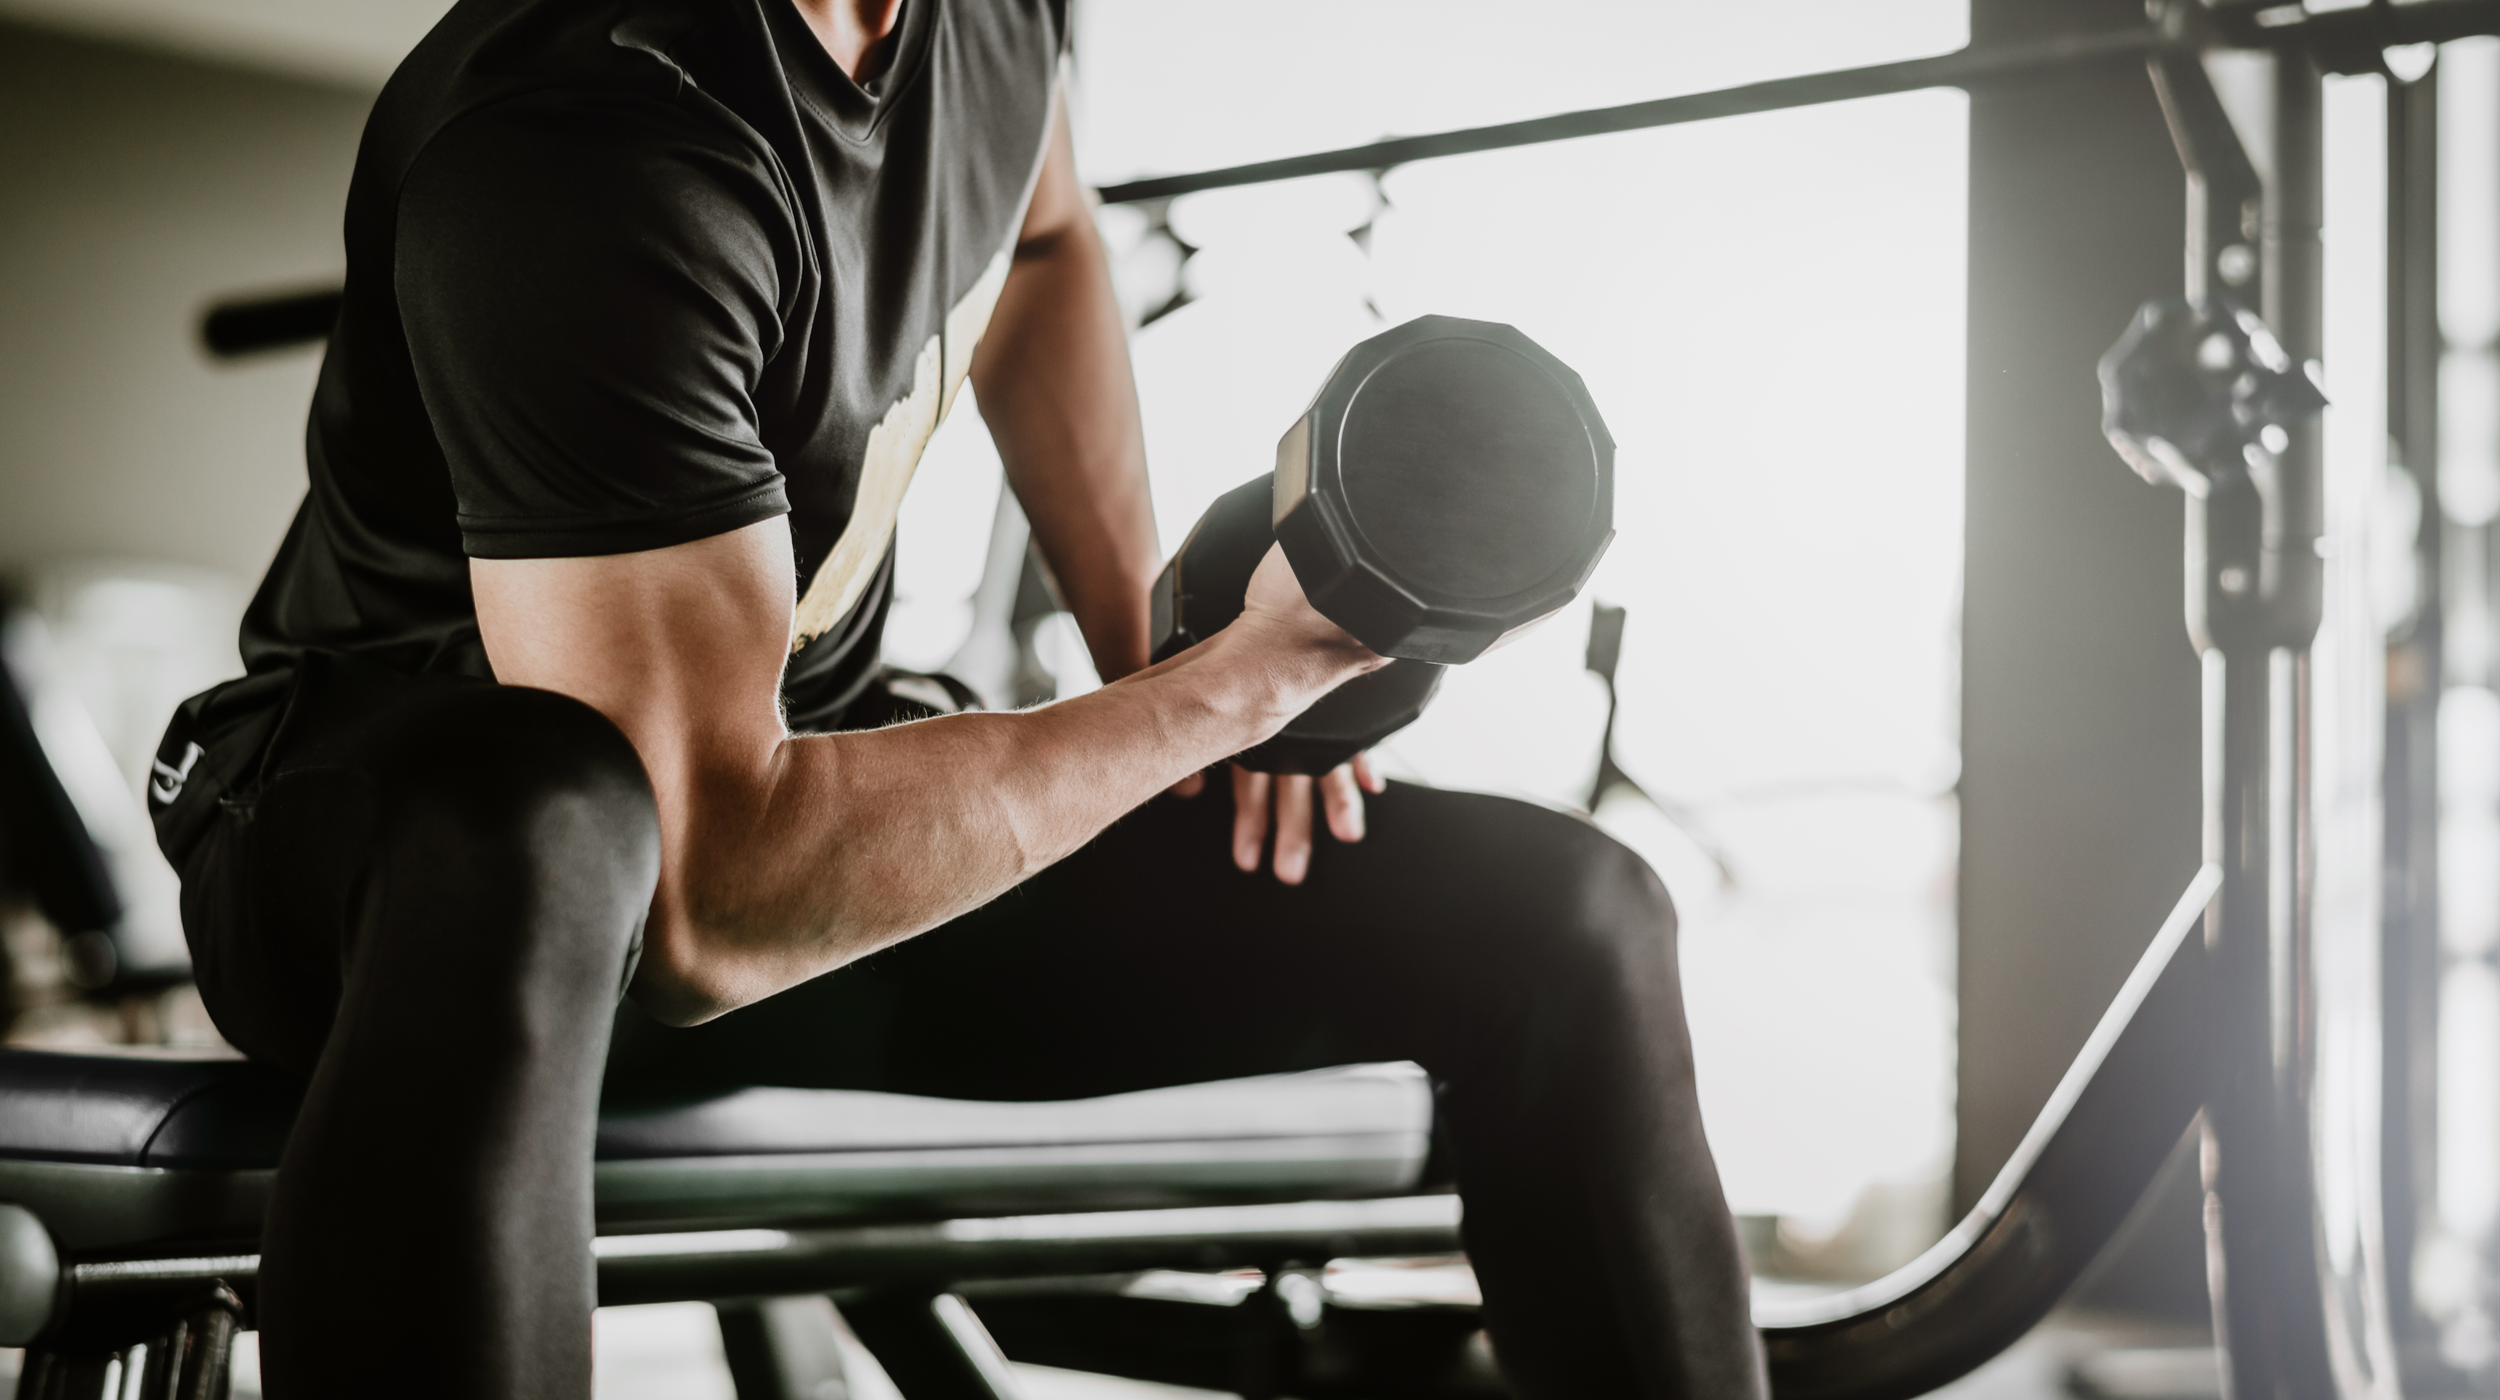 Resistance Training for Beginners